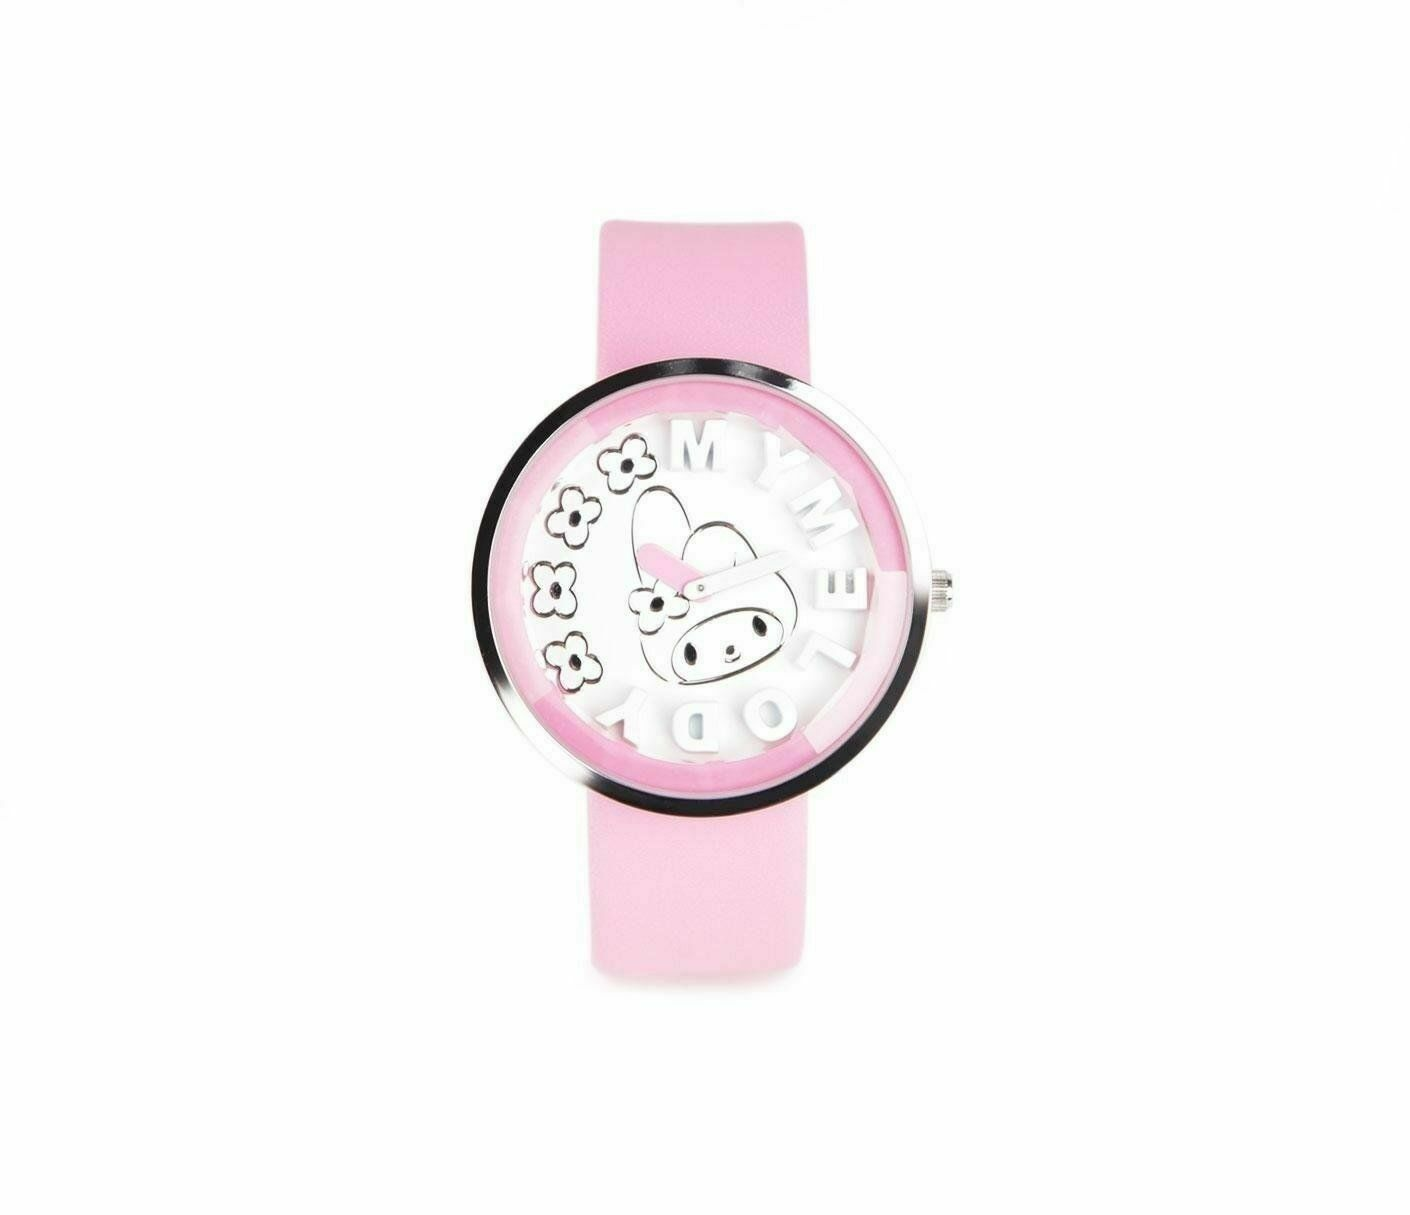 Authentic SANRIO My Melody Wrist watch: Minimal Relief NEW IN BOX - $37.99